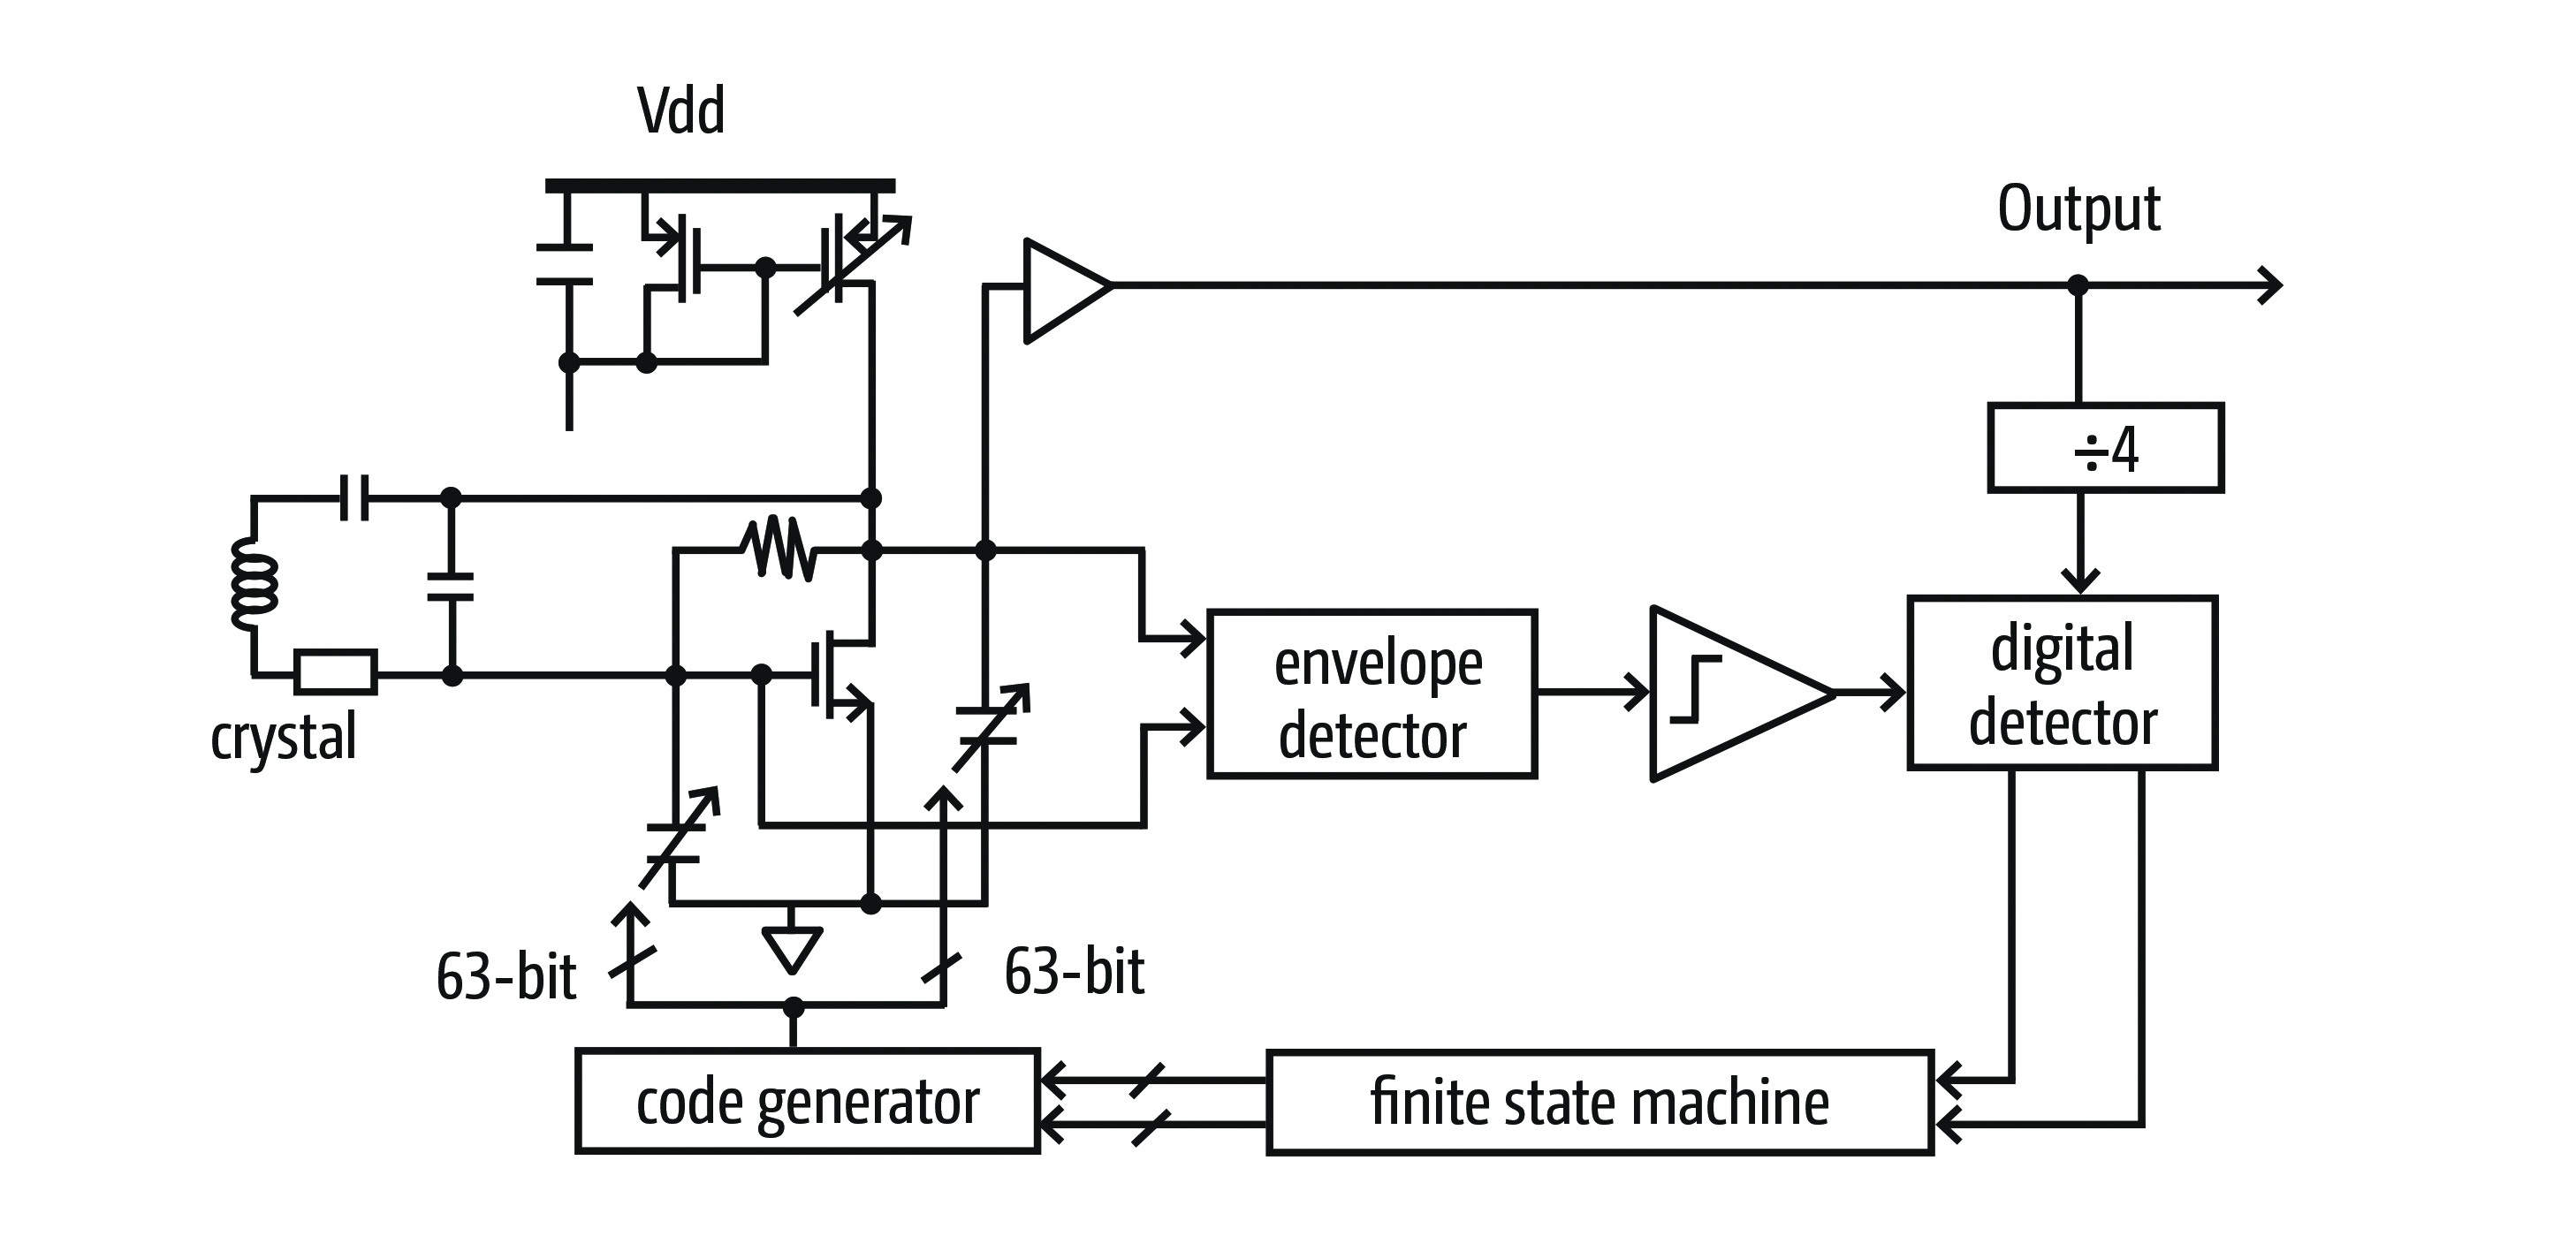 Isscc How To Kick Start A Crystal Oscillator Year 6 Circuit Diagrams Figure 1 Finesse Cuts From 266ms For No Extra Power